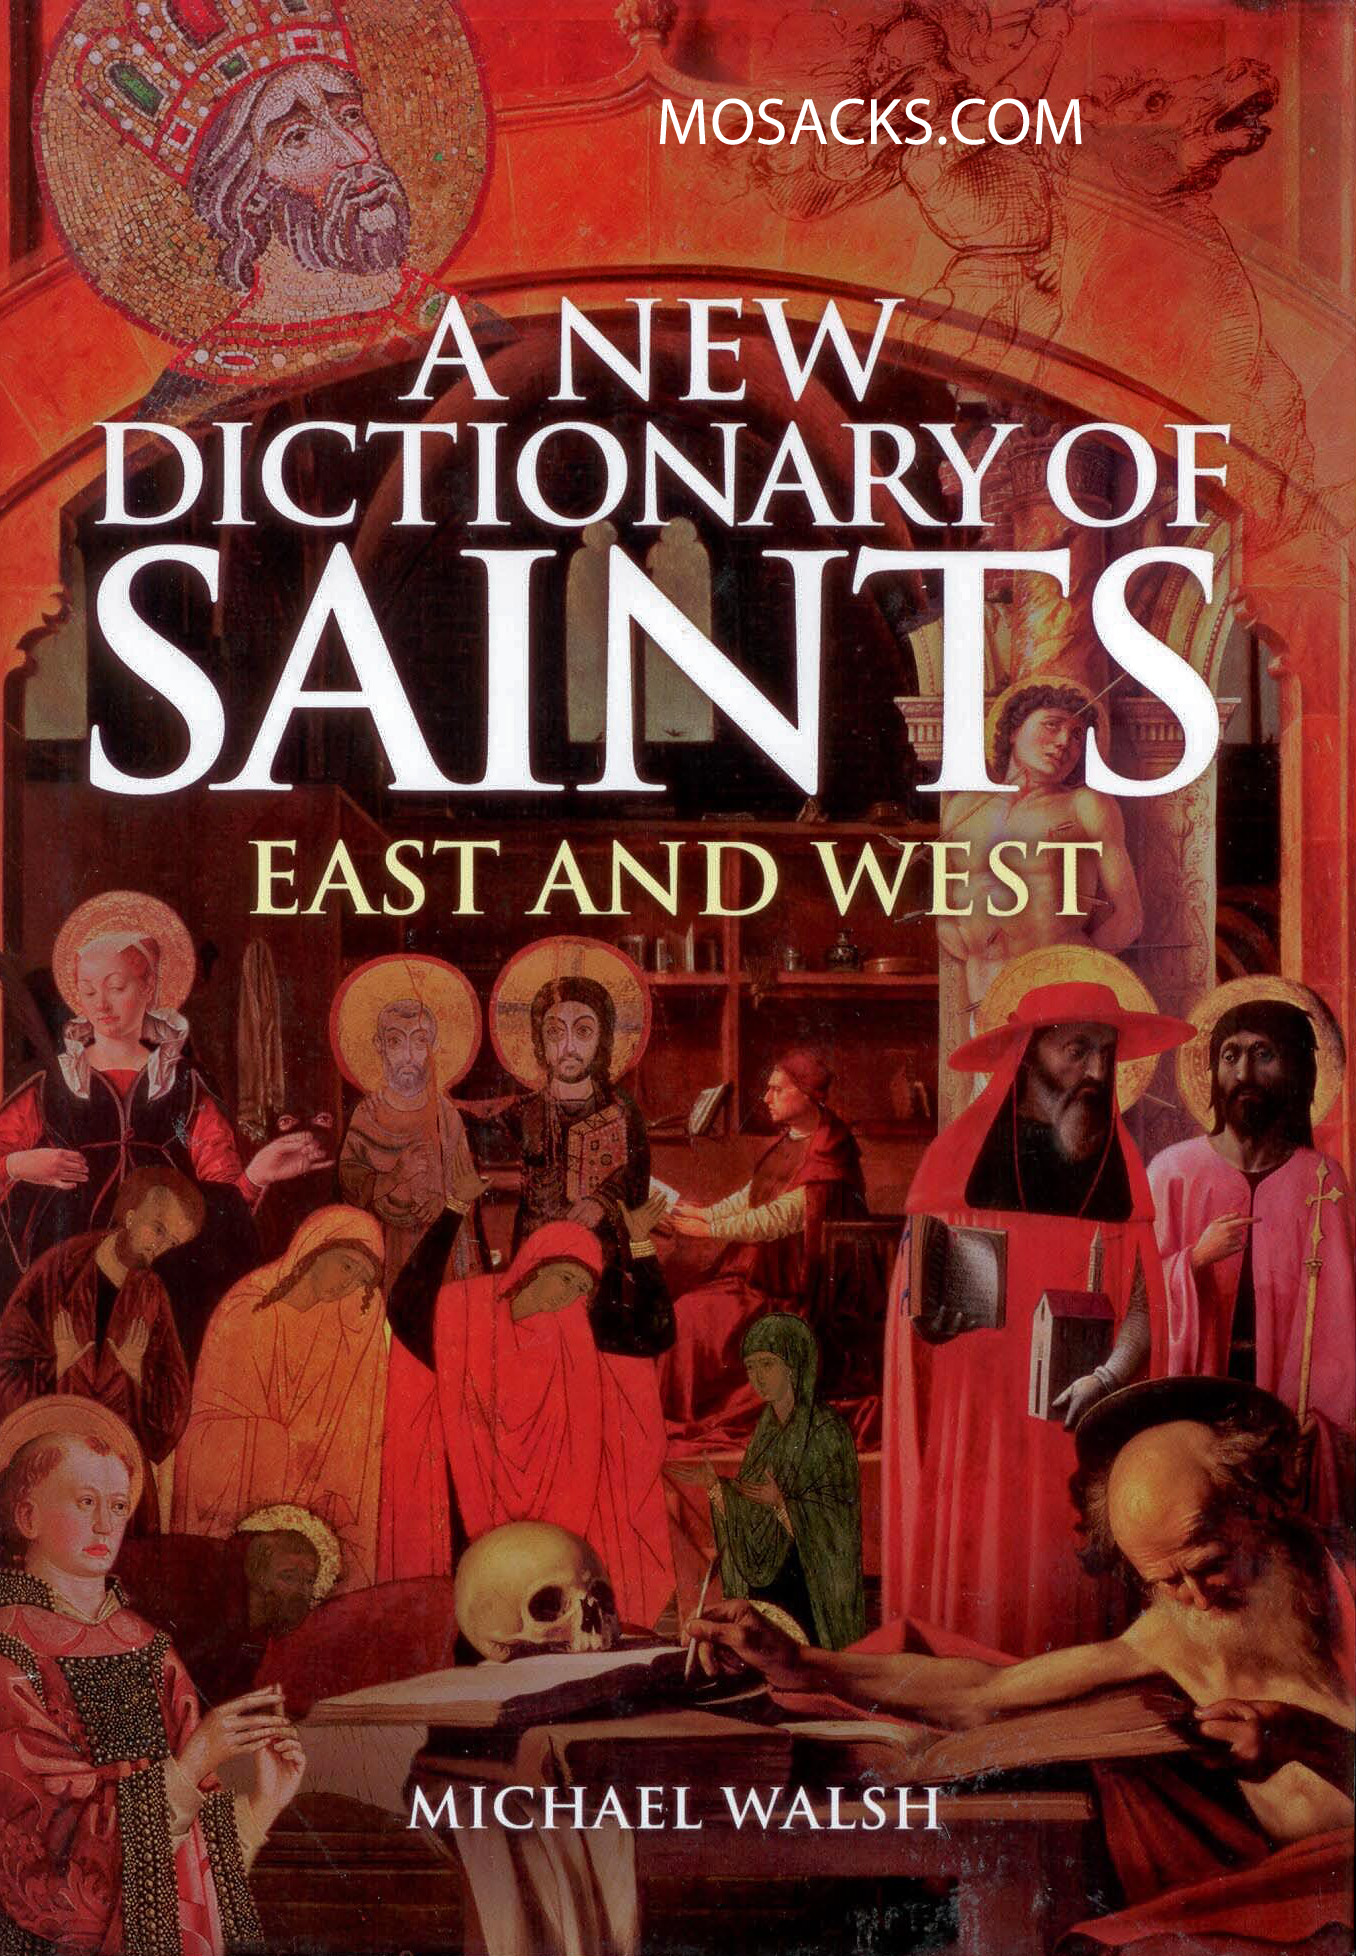 A New Dictionary of Saints: East and West